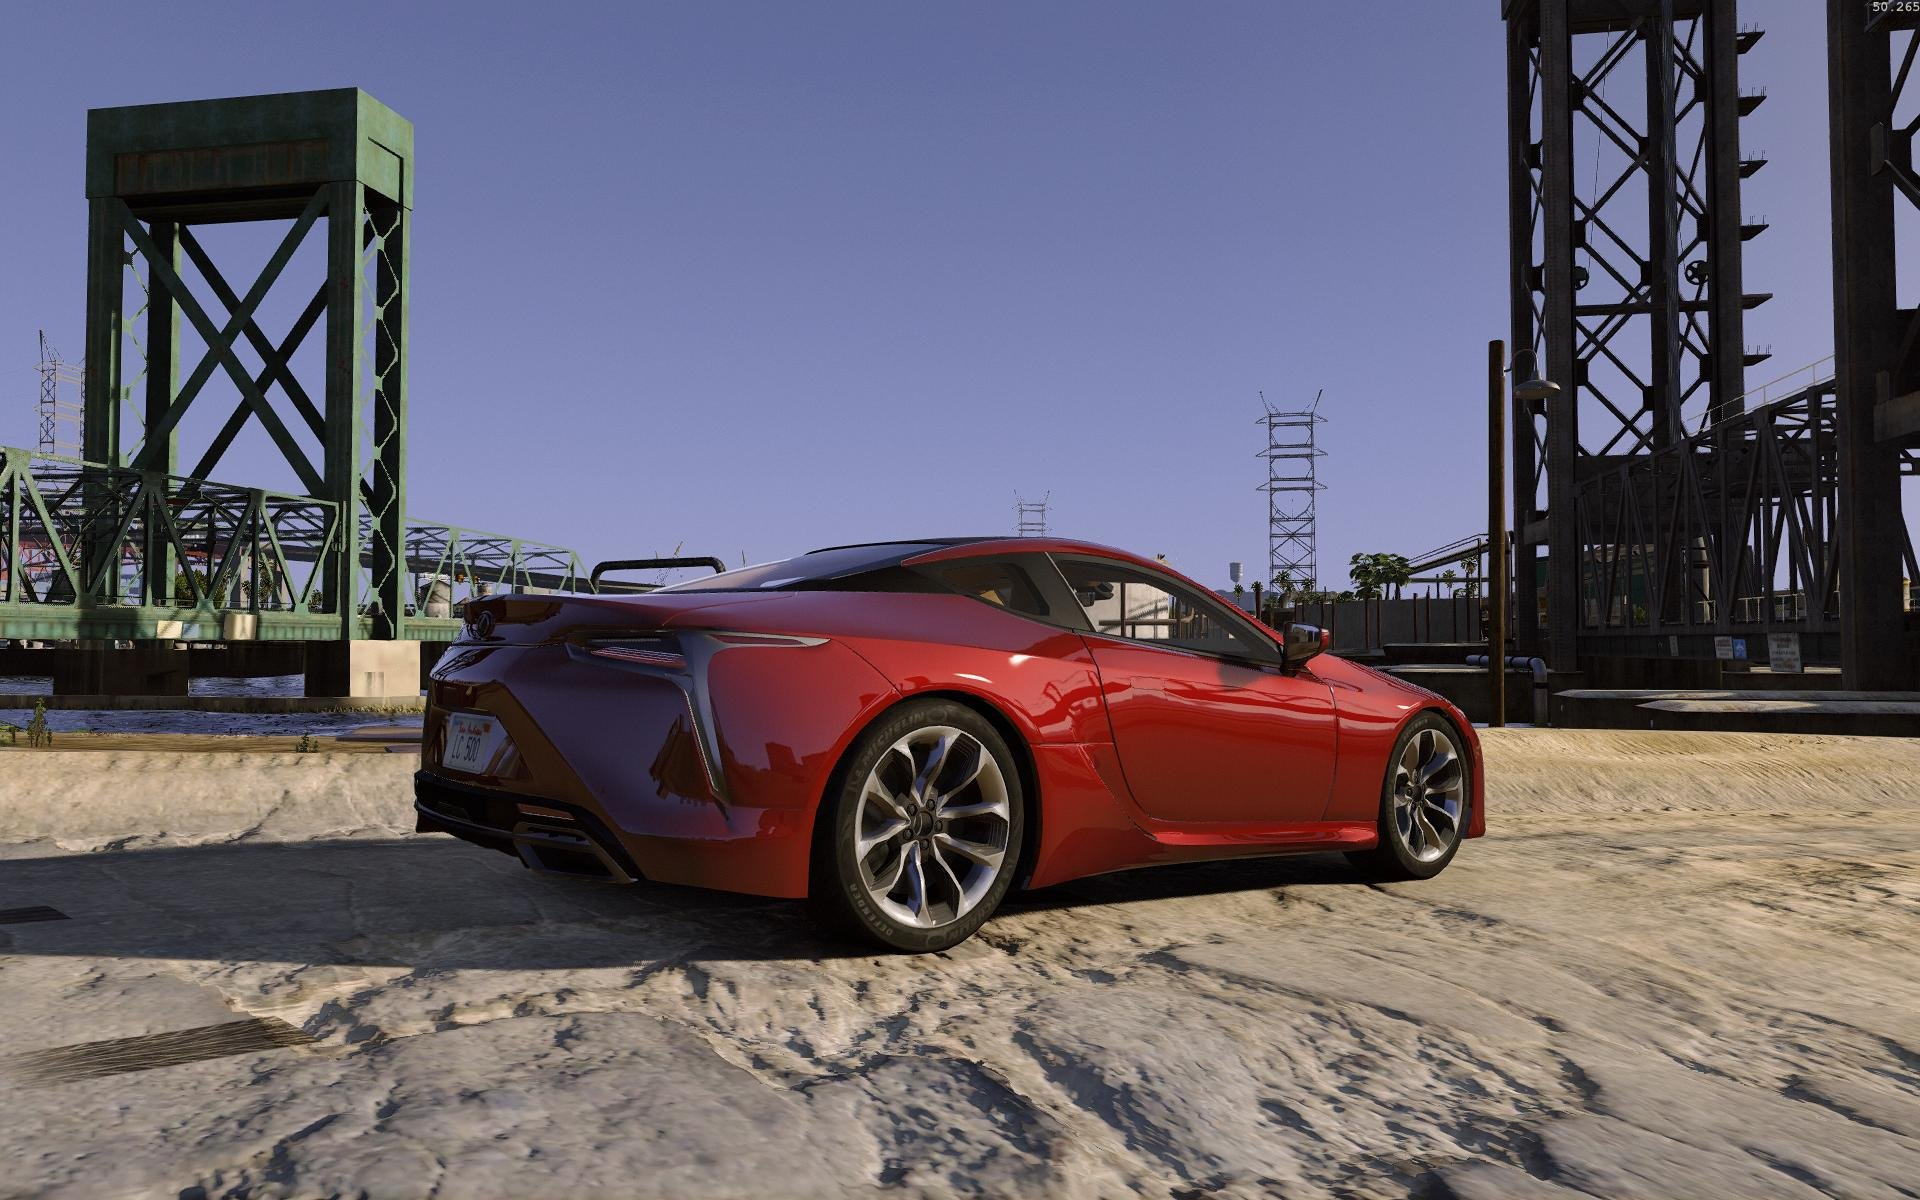 2018 lexus lc. Perfect 2018 7fed58 3u6usdf For 2018 Lexus Lc